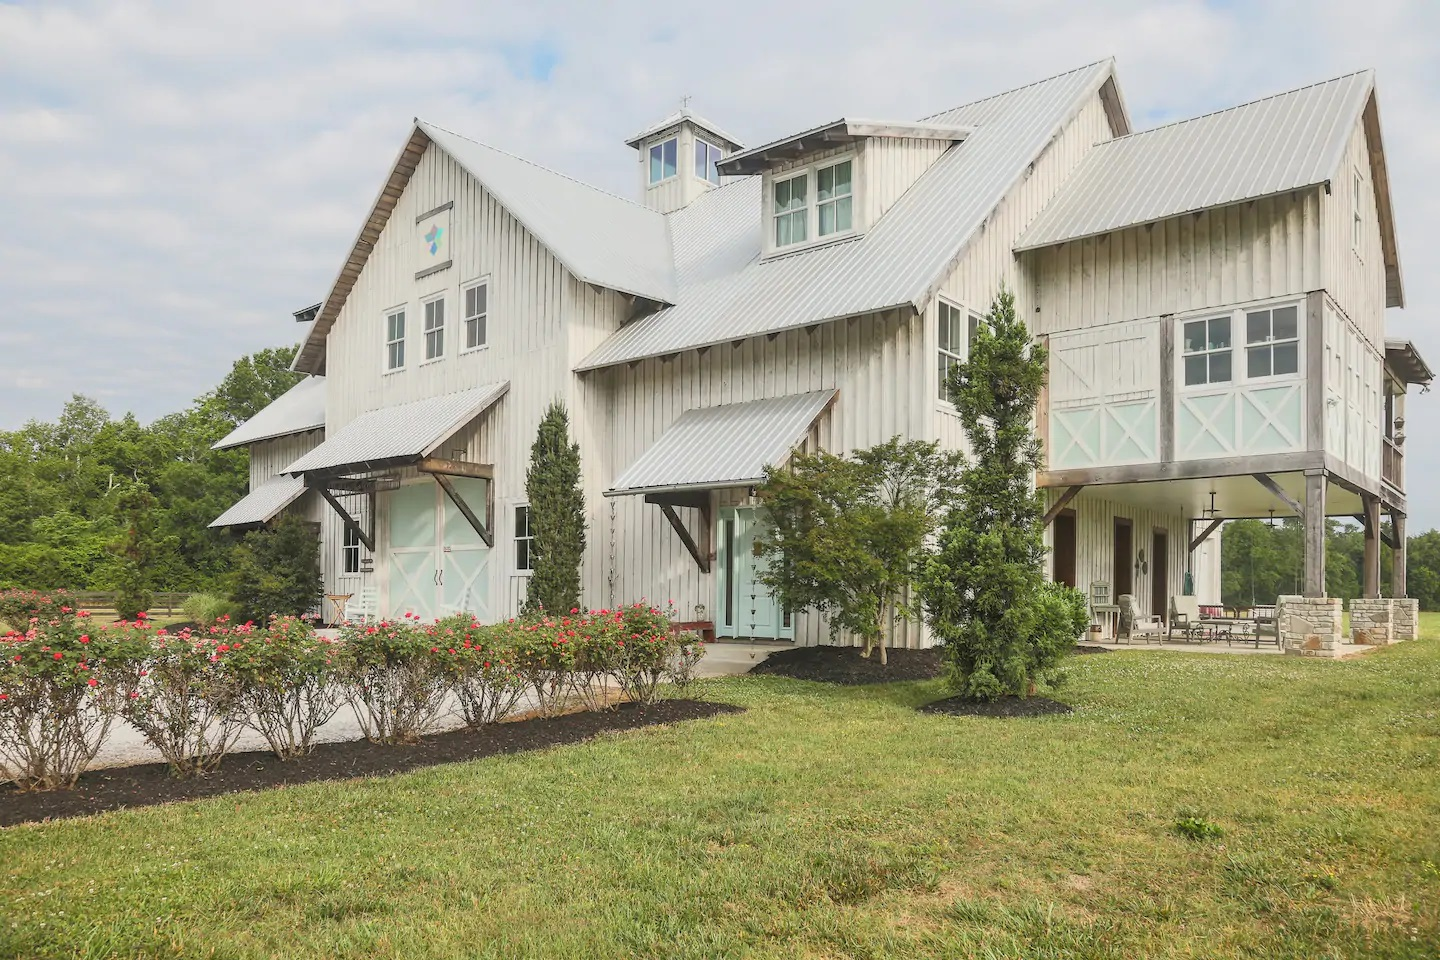 Photo of the exterior of one of the Airbnbs in Tennessee which happens to be a luxury barn.